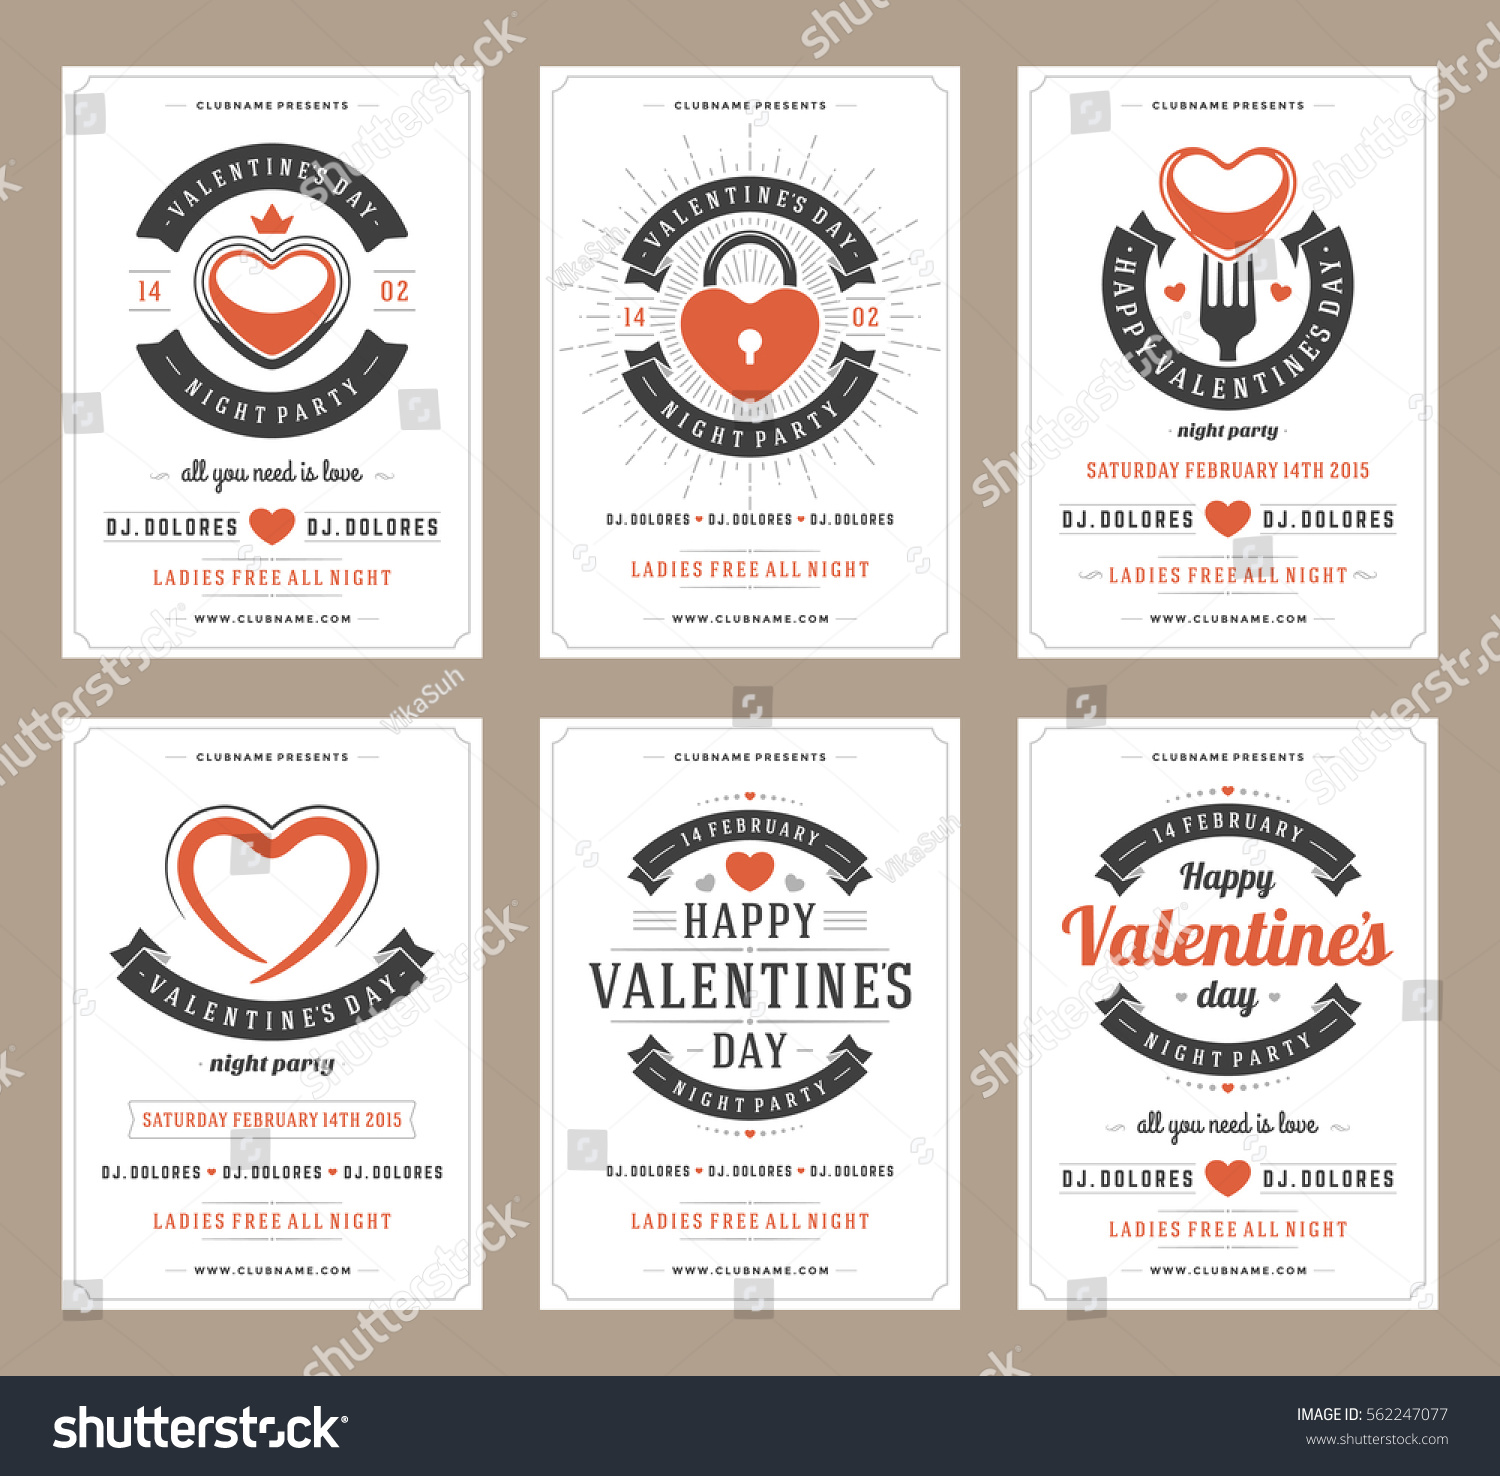 Happy Valentines Day Party Posters Design Stock Vector 562247077 ...